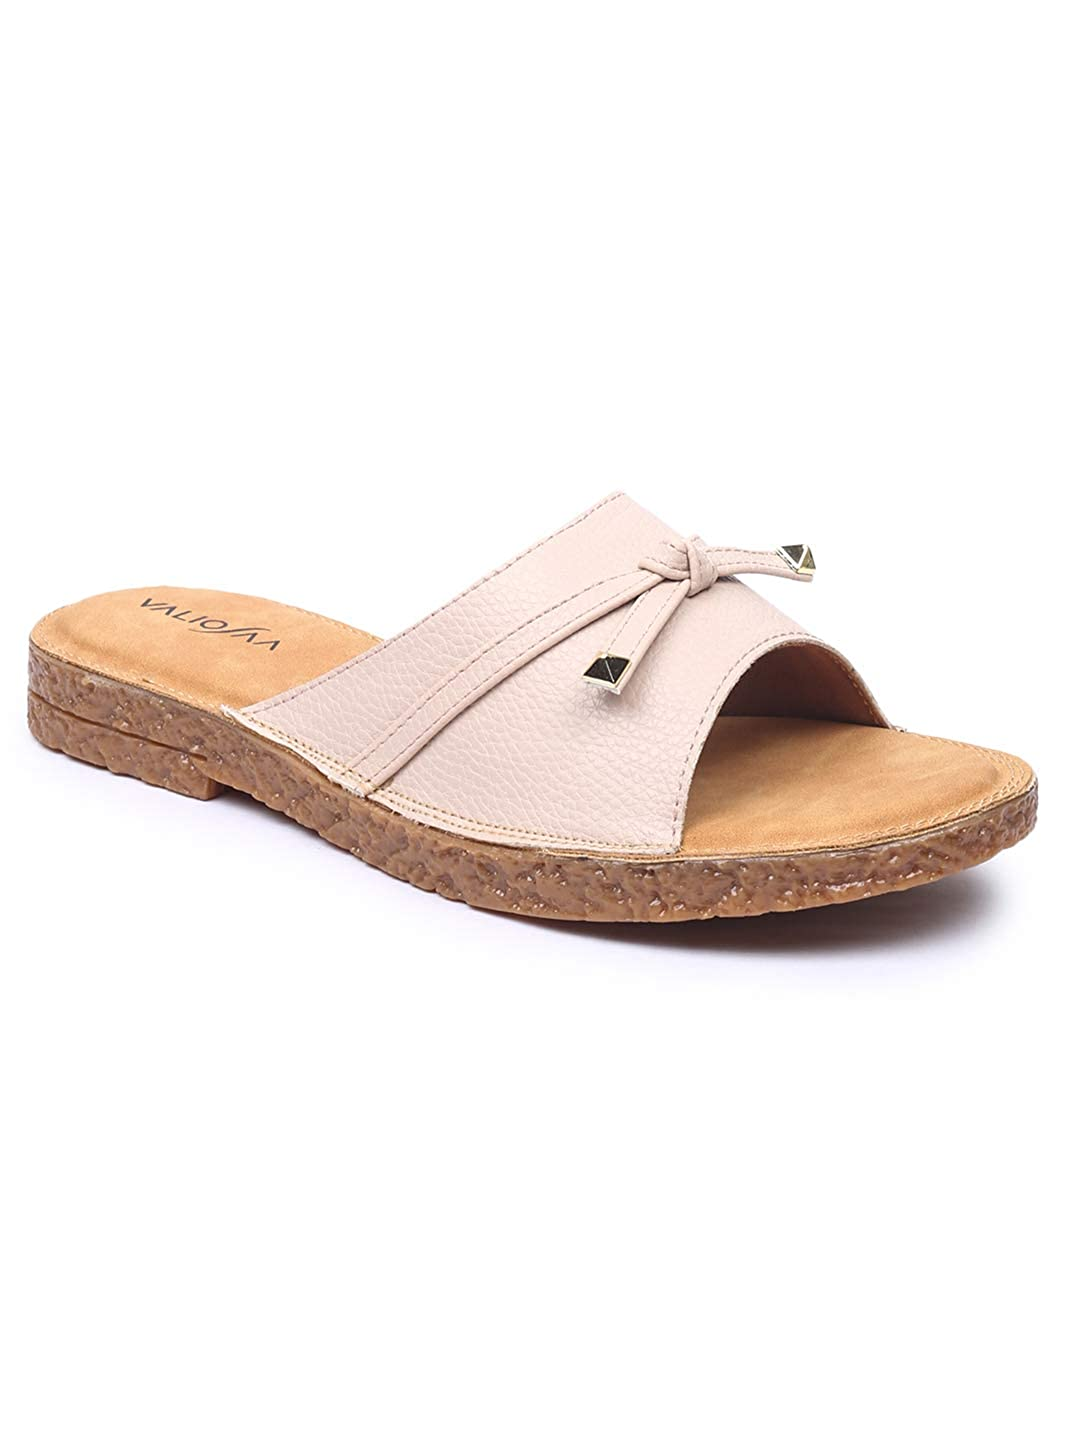 ELISE Women's Ballerinas & Flats 90% off From INR 162 at Amazon